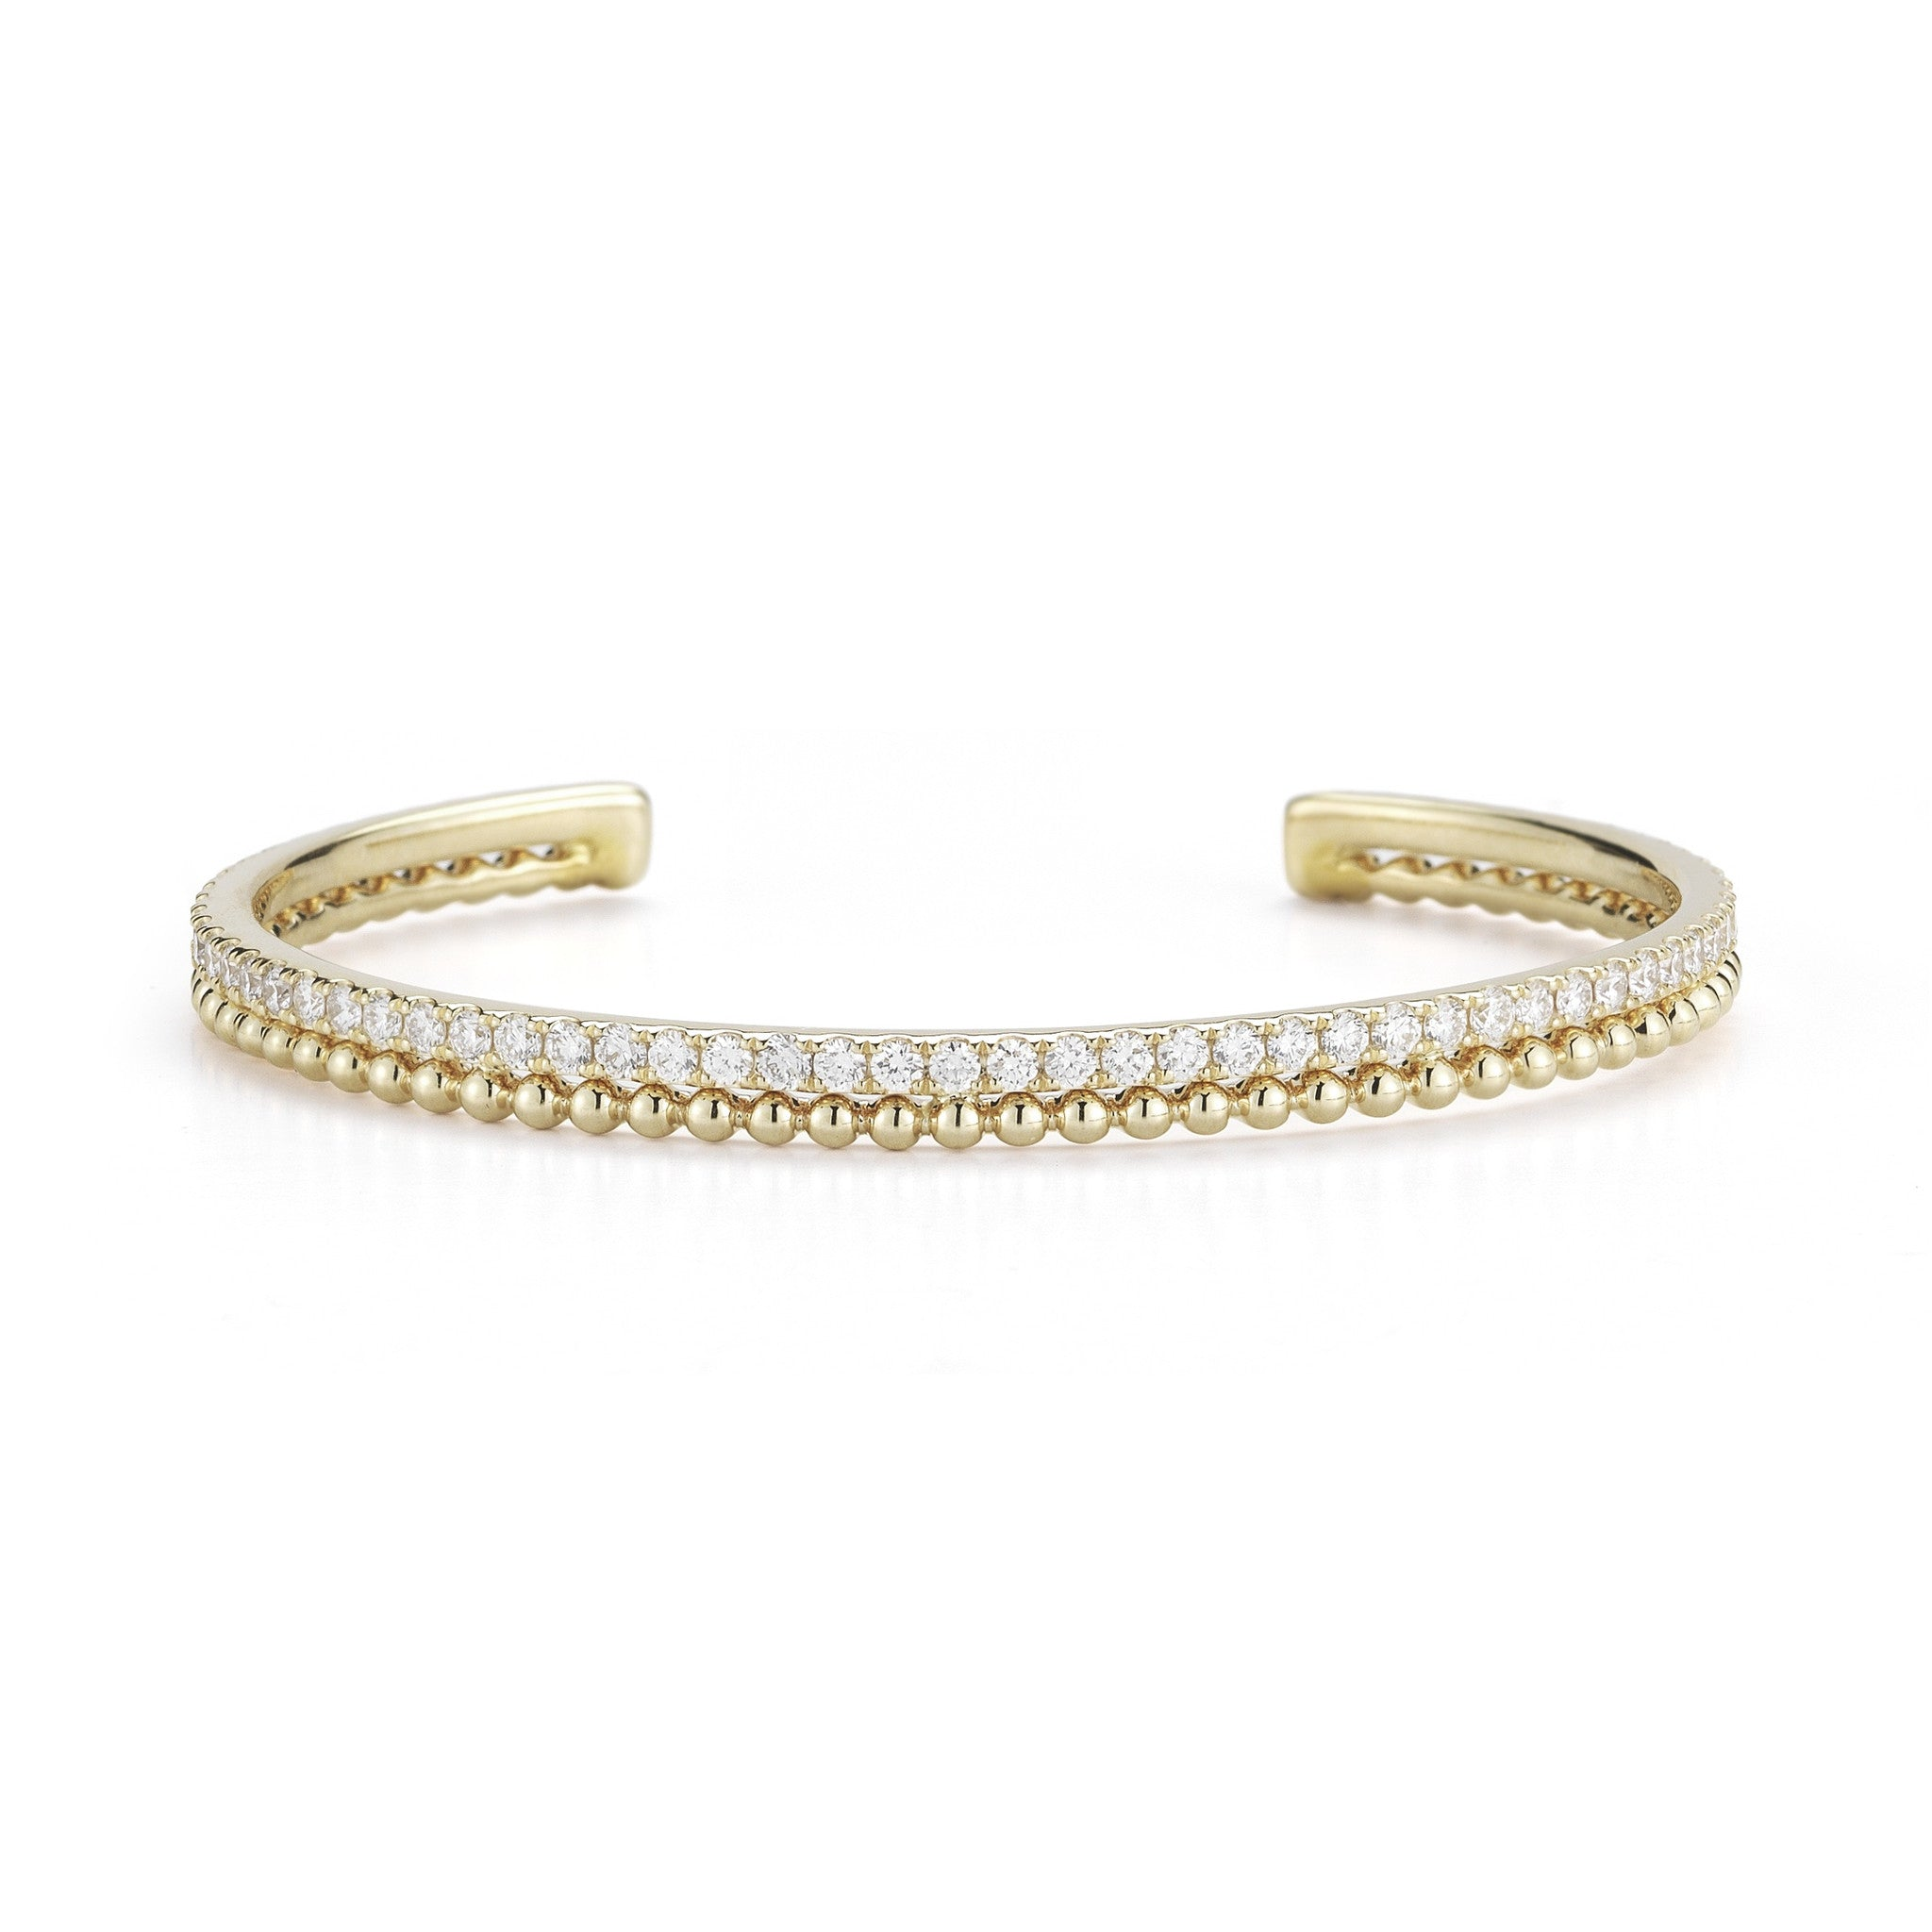 Poppy Rae 14K Diamond Cuff